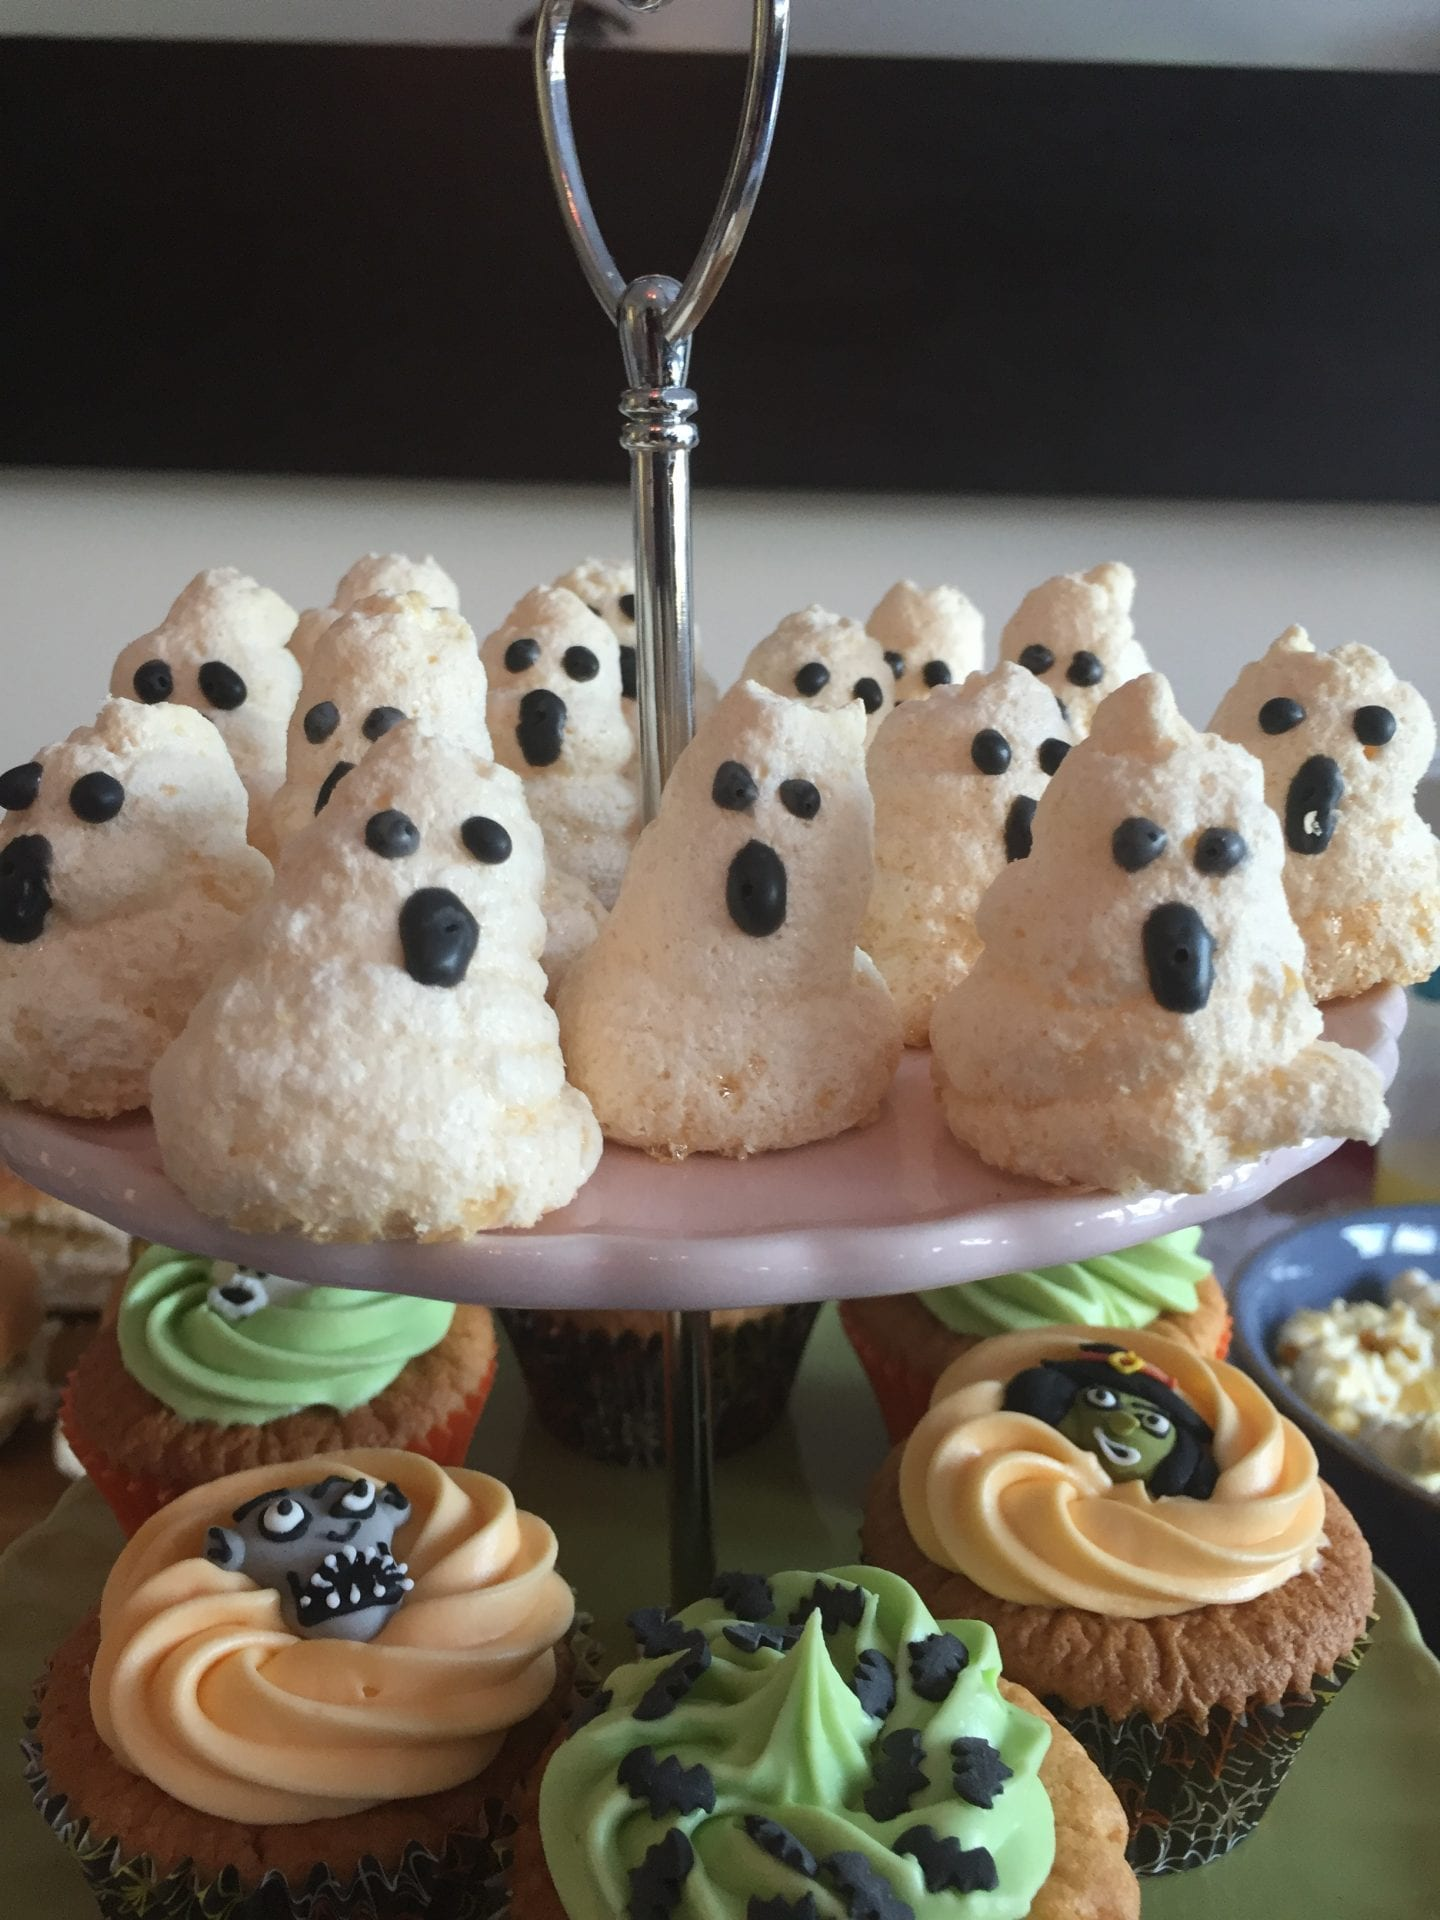 Ghost shaped meringues with black icing features